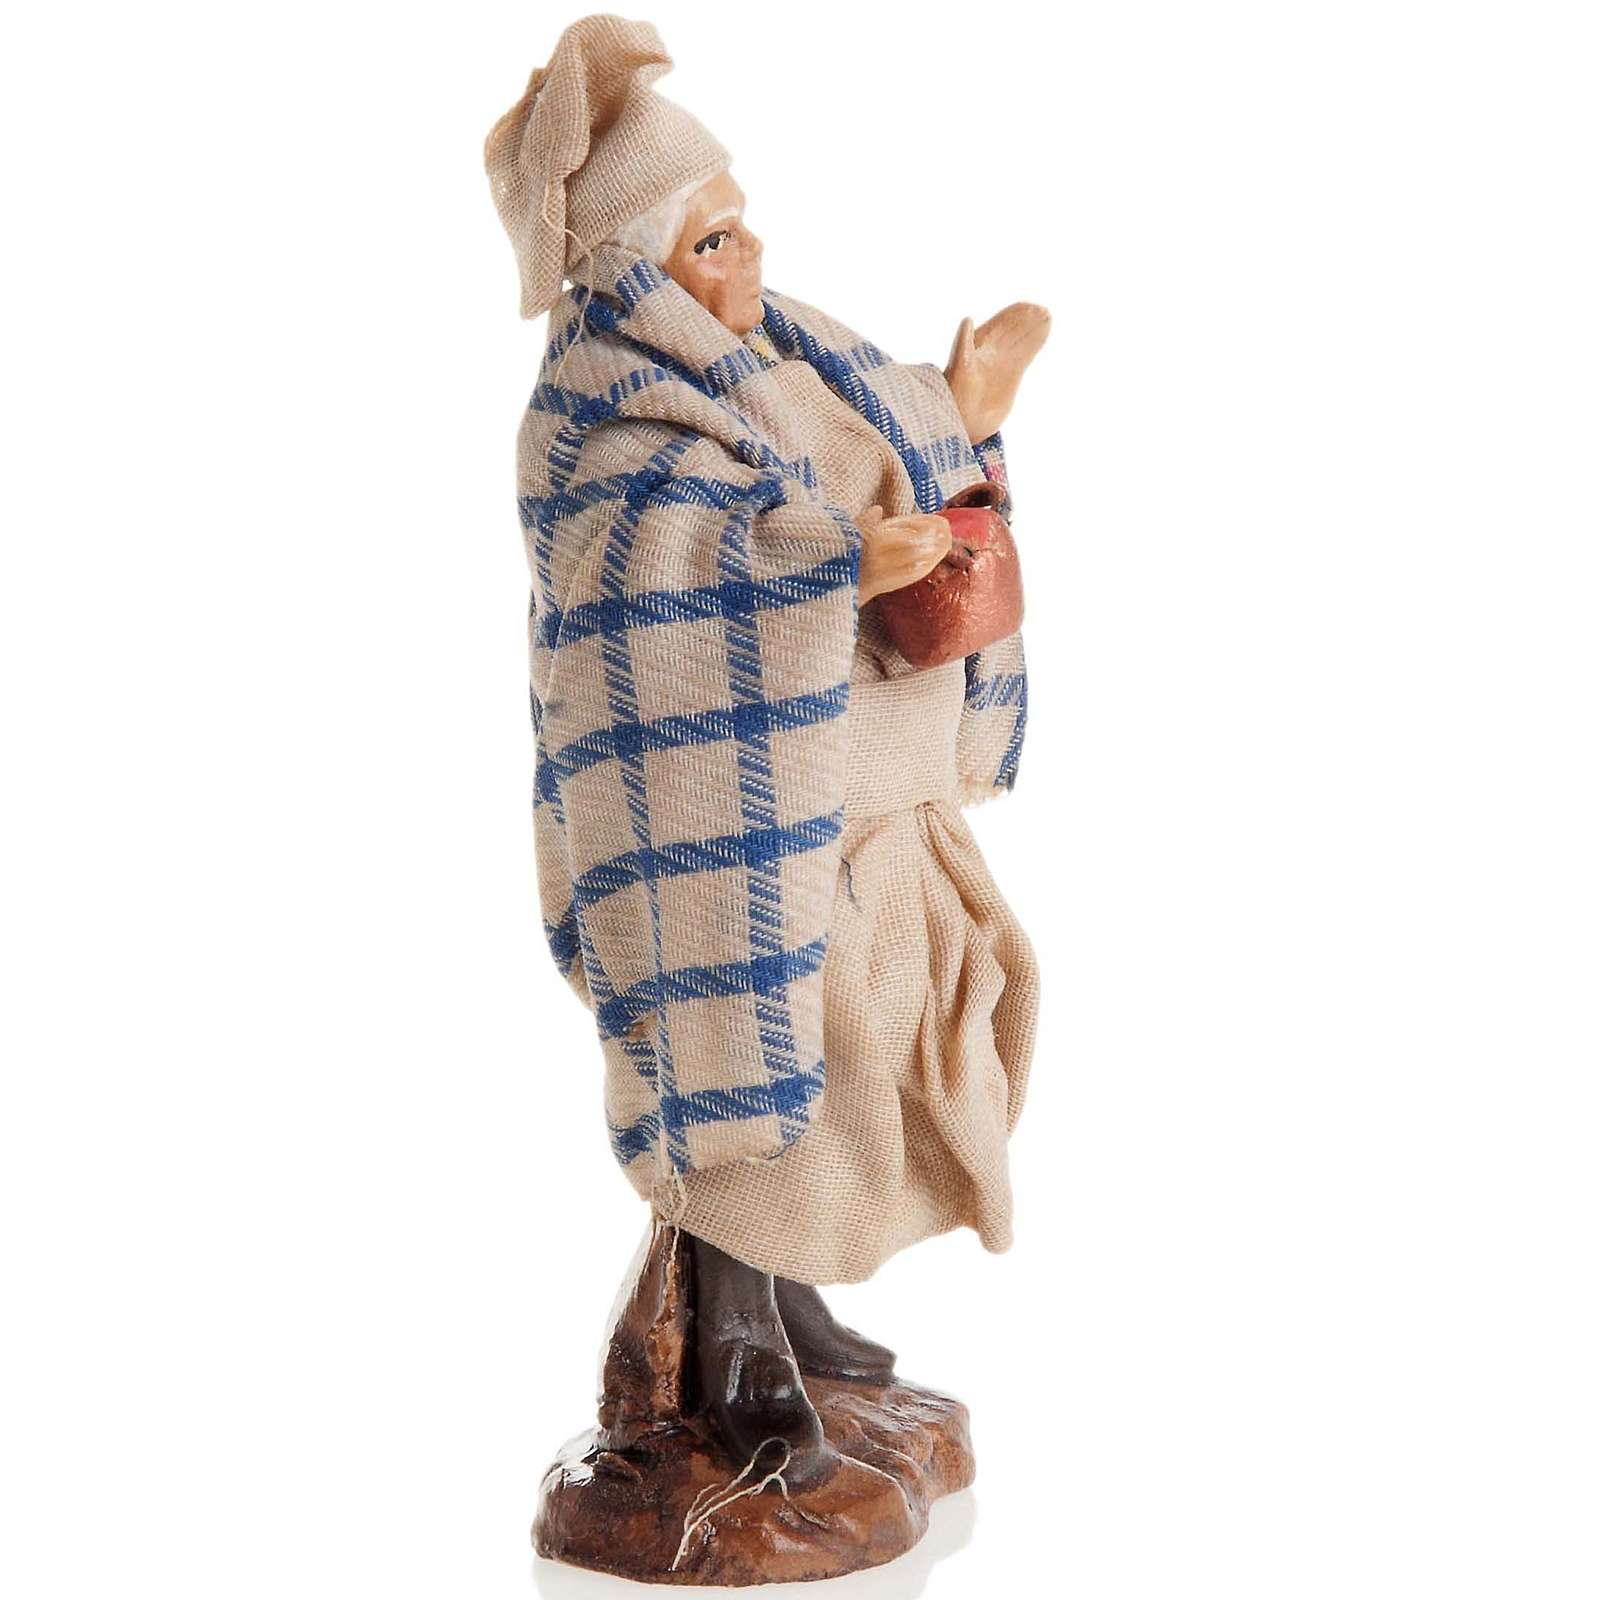 Neapolitan nativity figurine, cook 8cm 4